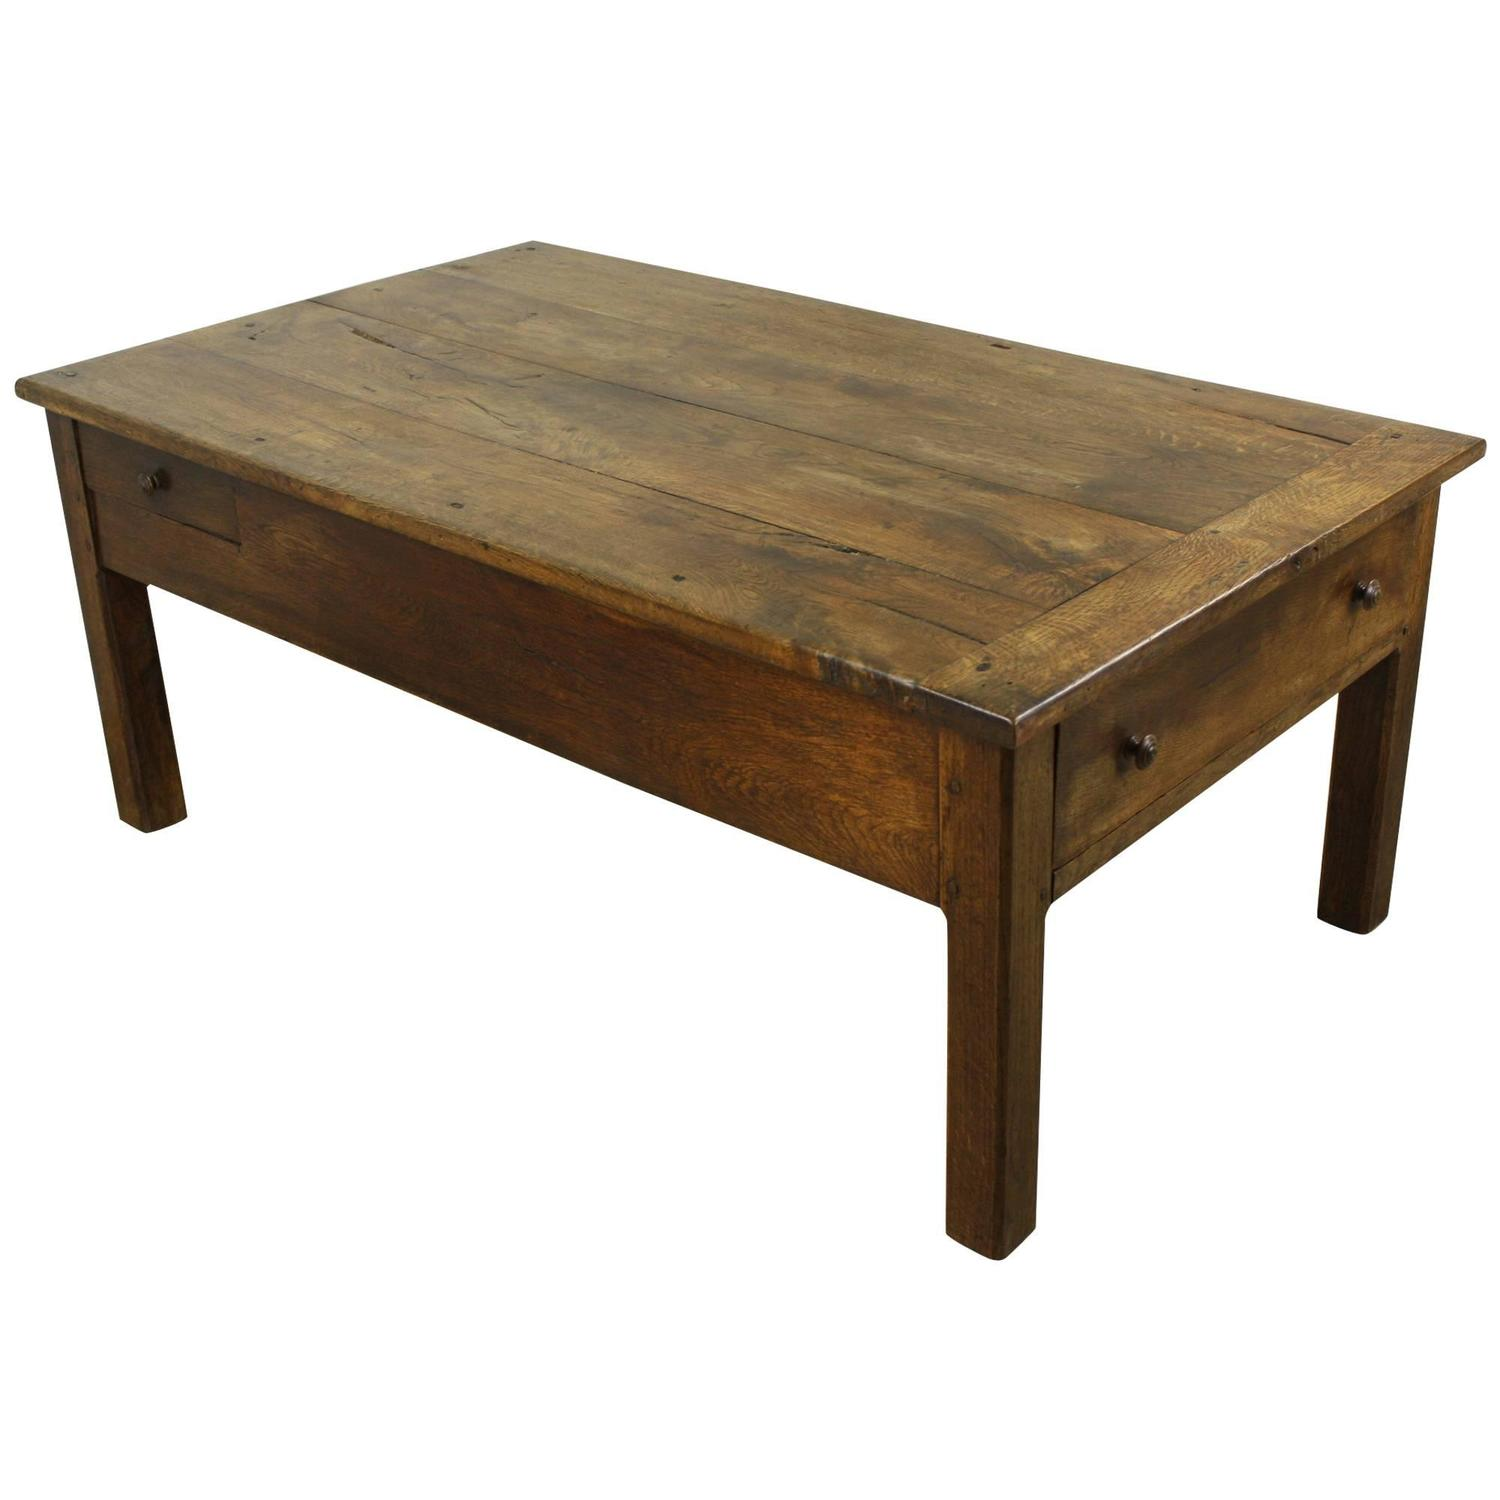 Antique French Oak Country Coffee Table Two Drawers at 1stdibs